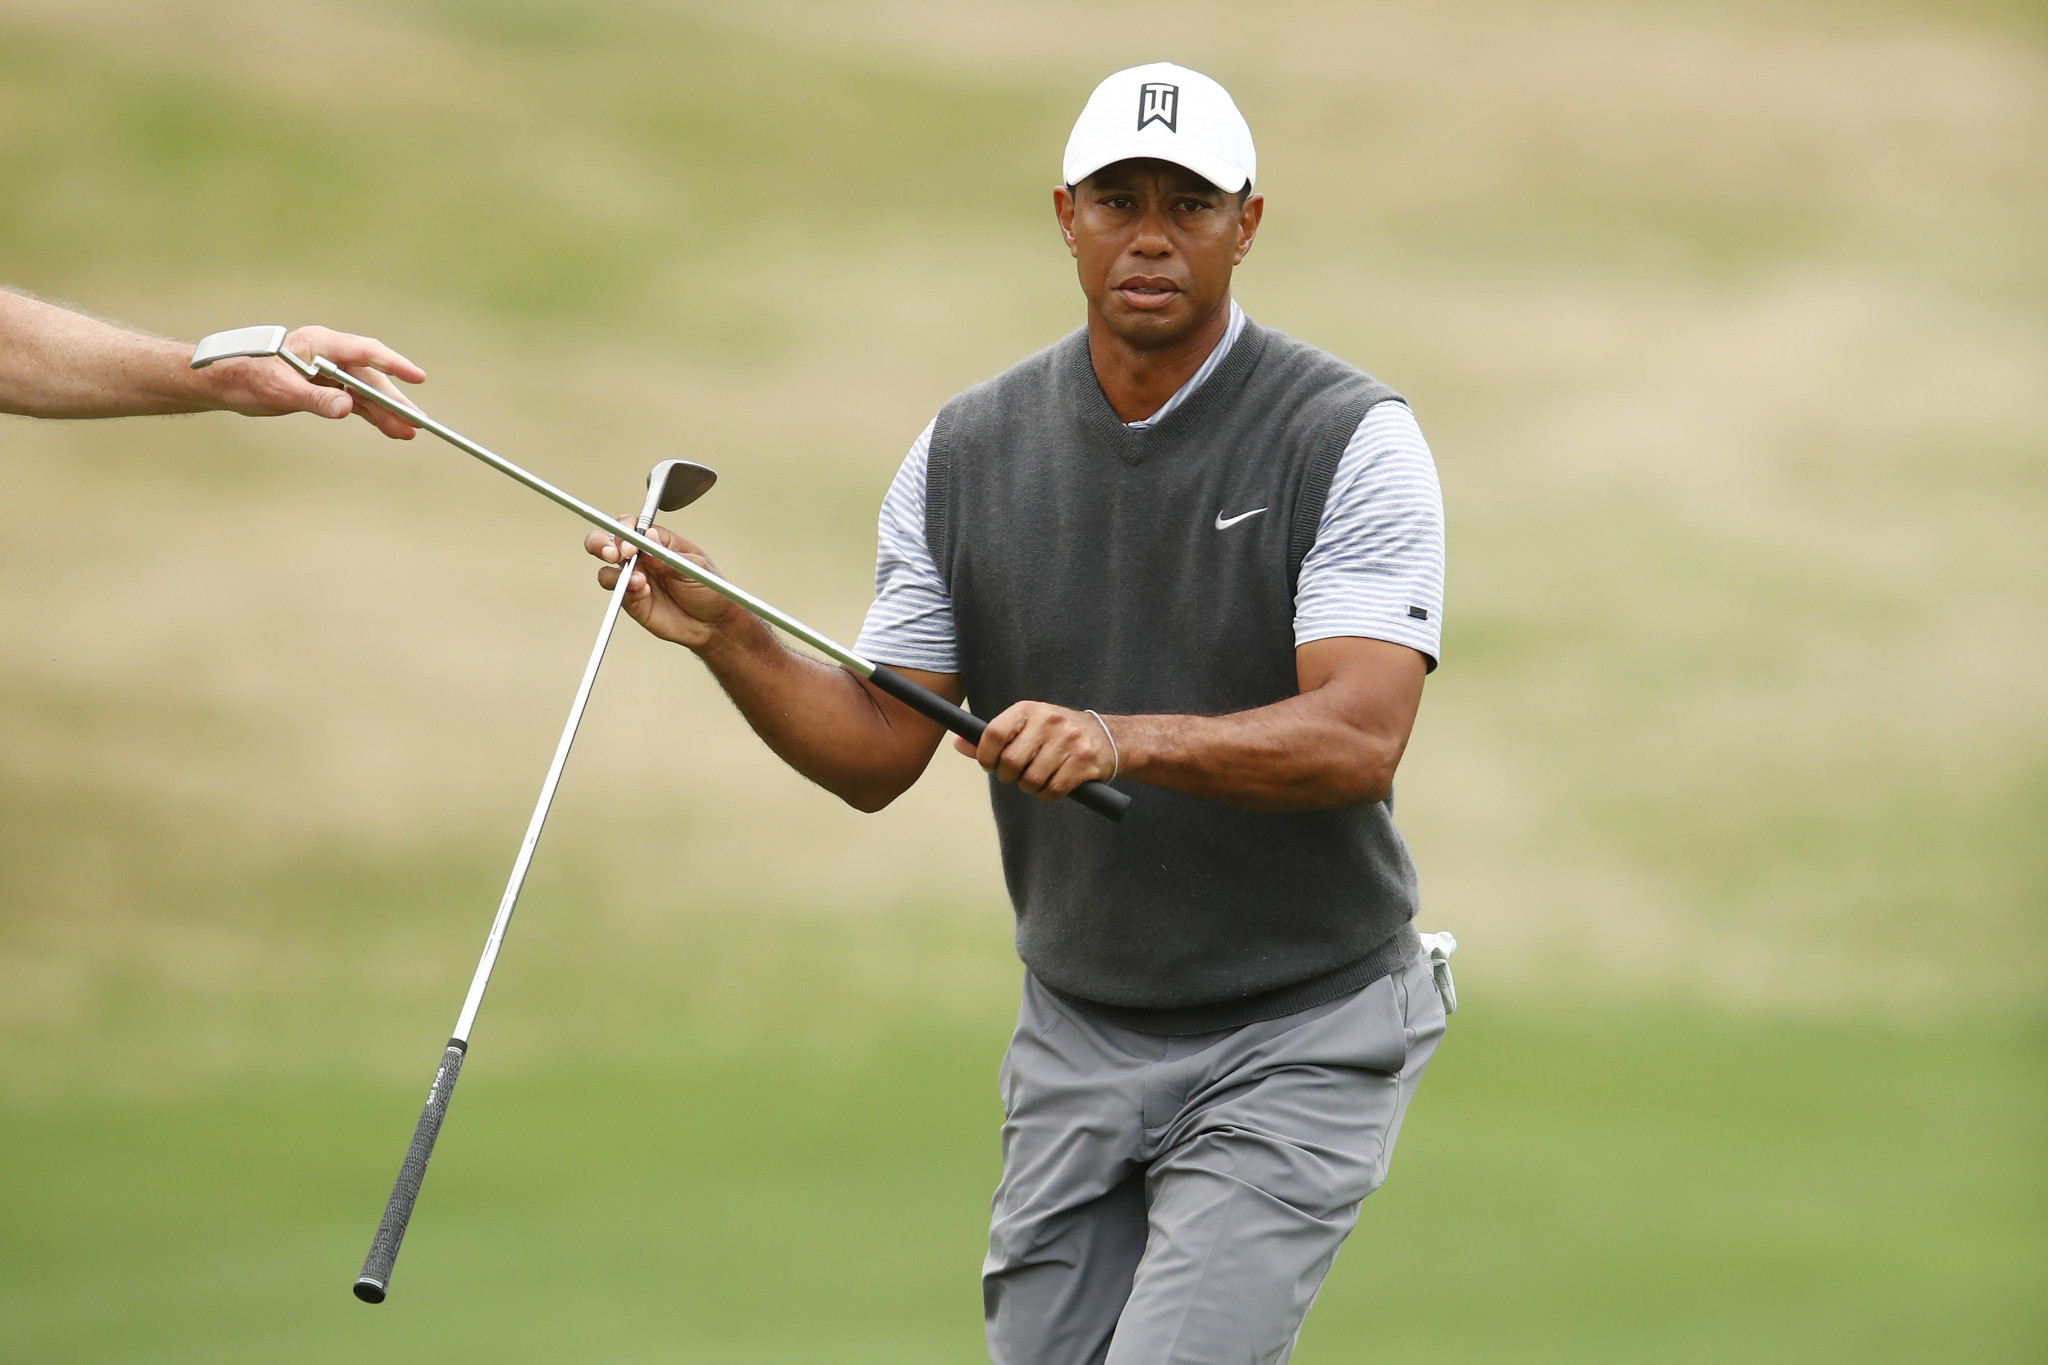 Woods to face McIlroy in mouthwatering showdown at WGC Dell-Technologies Match Play